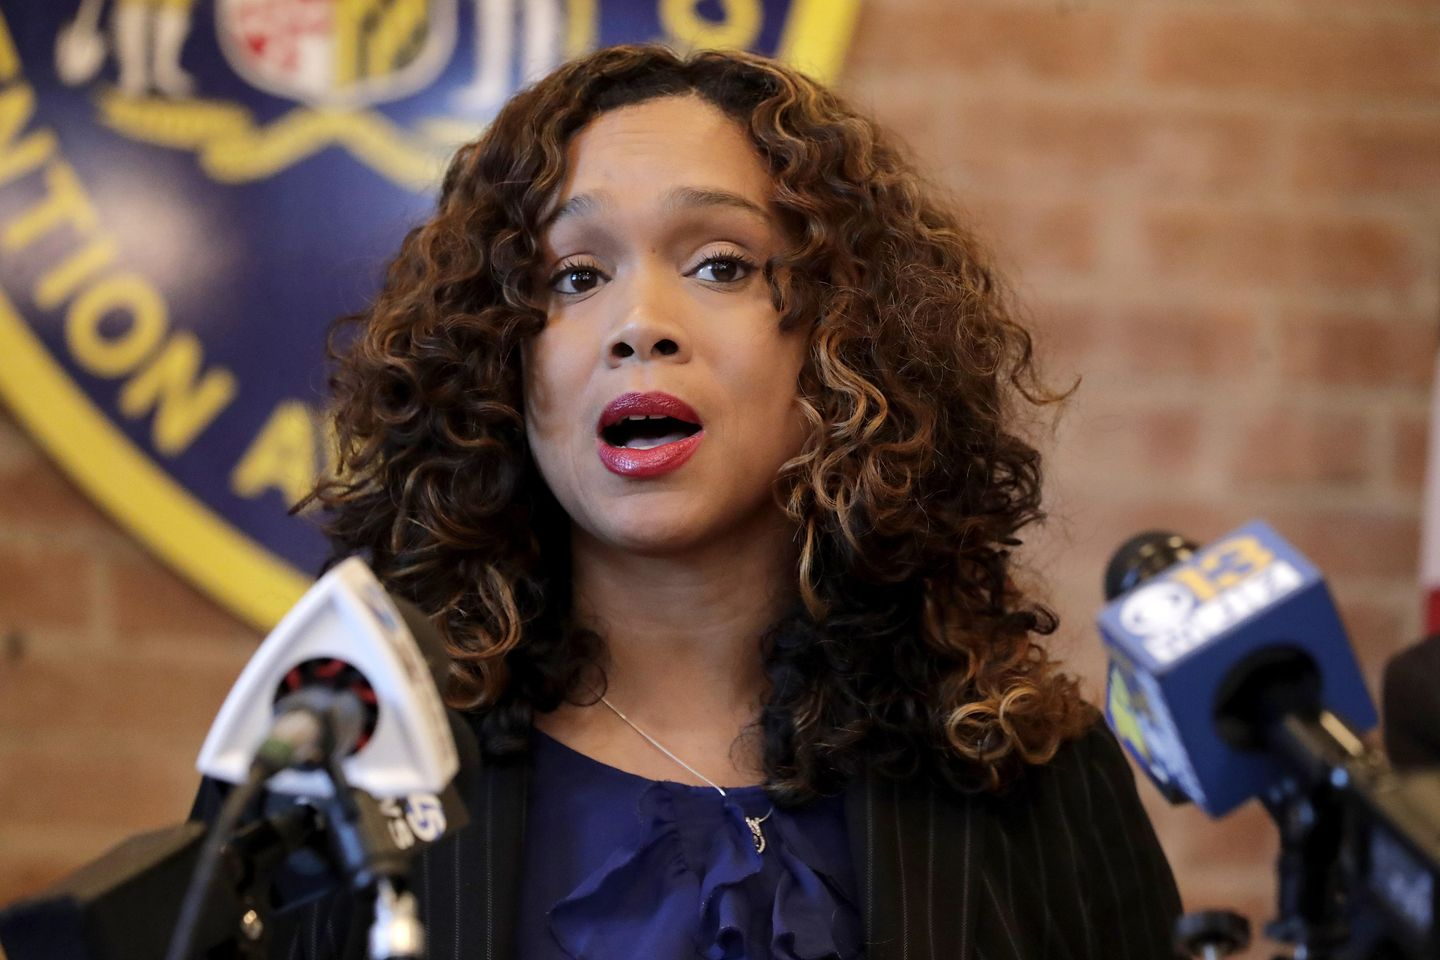 IRS places tax lien against Baltimore prosecutor, lawmaker